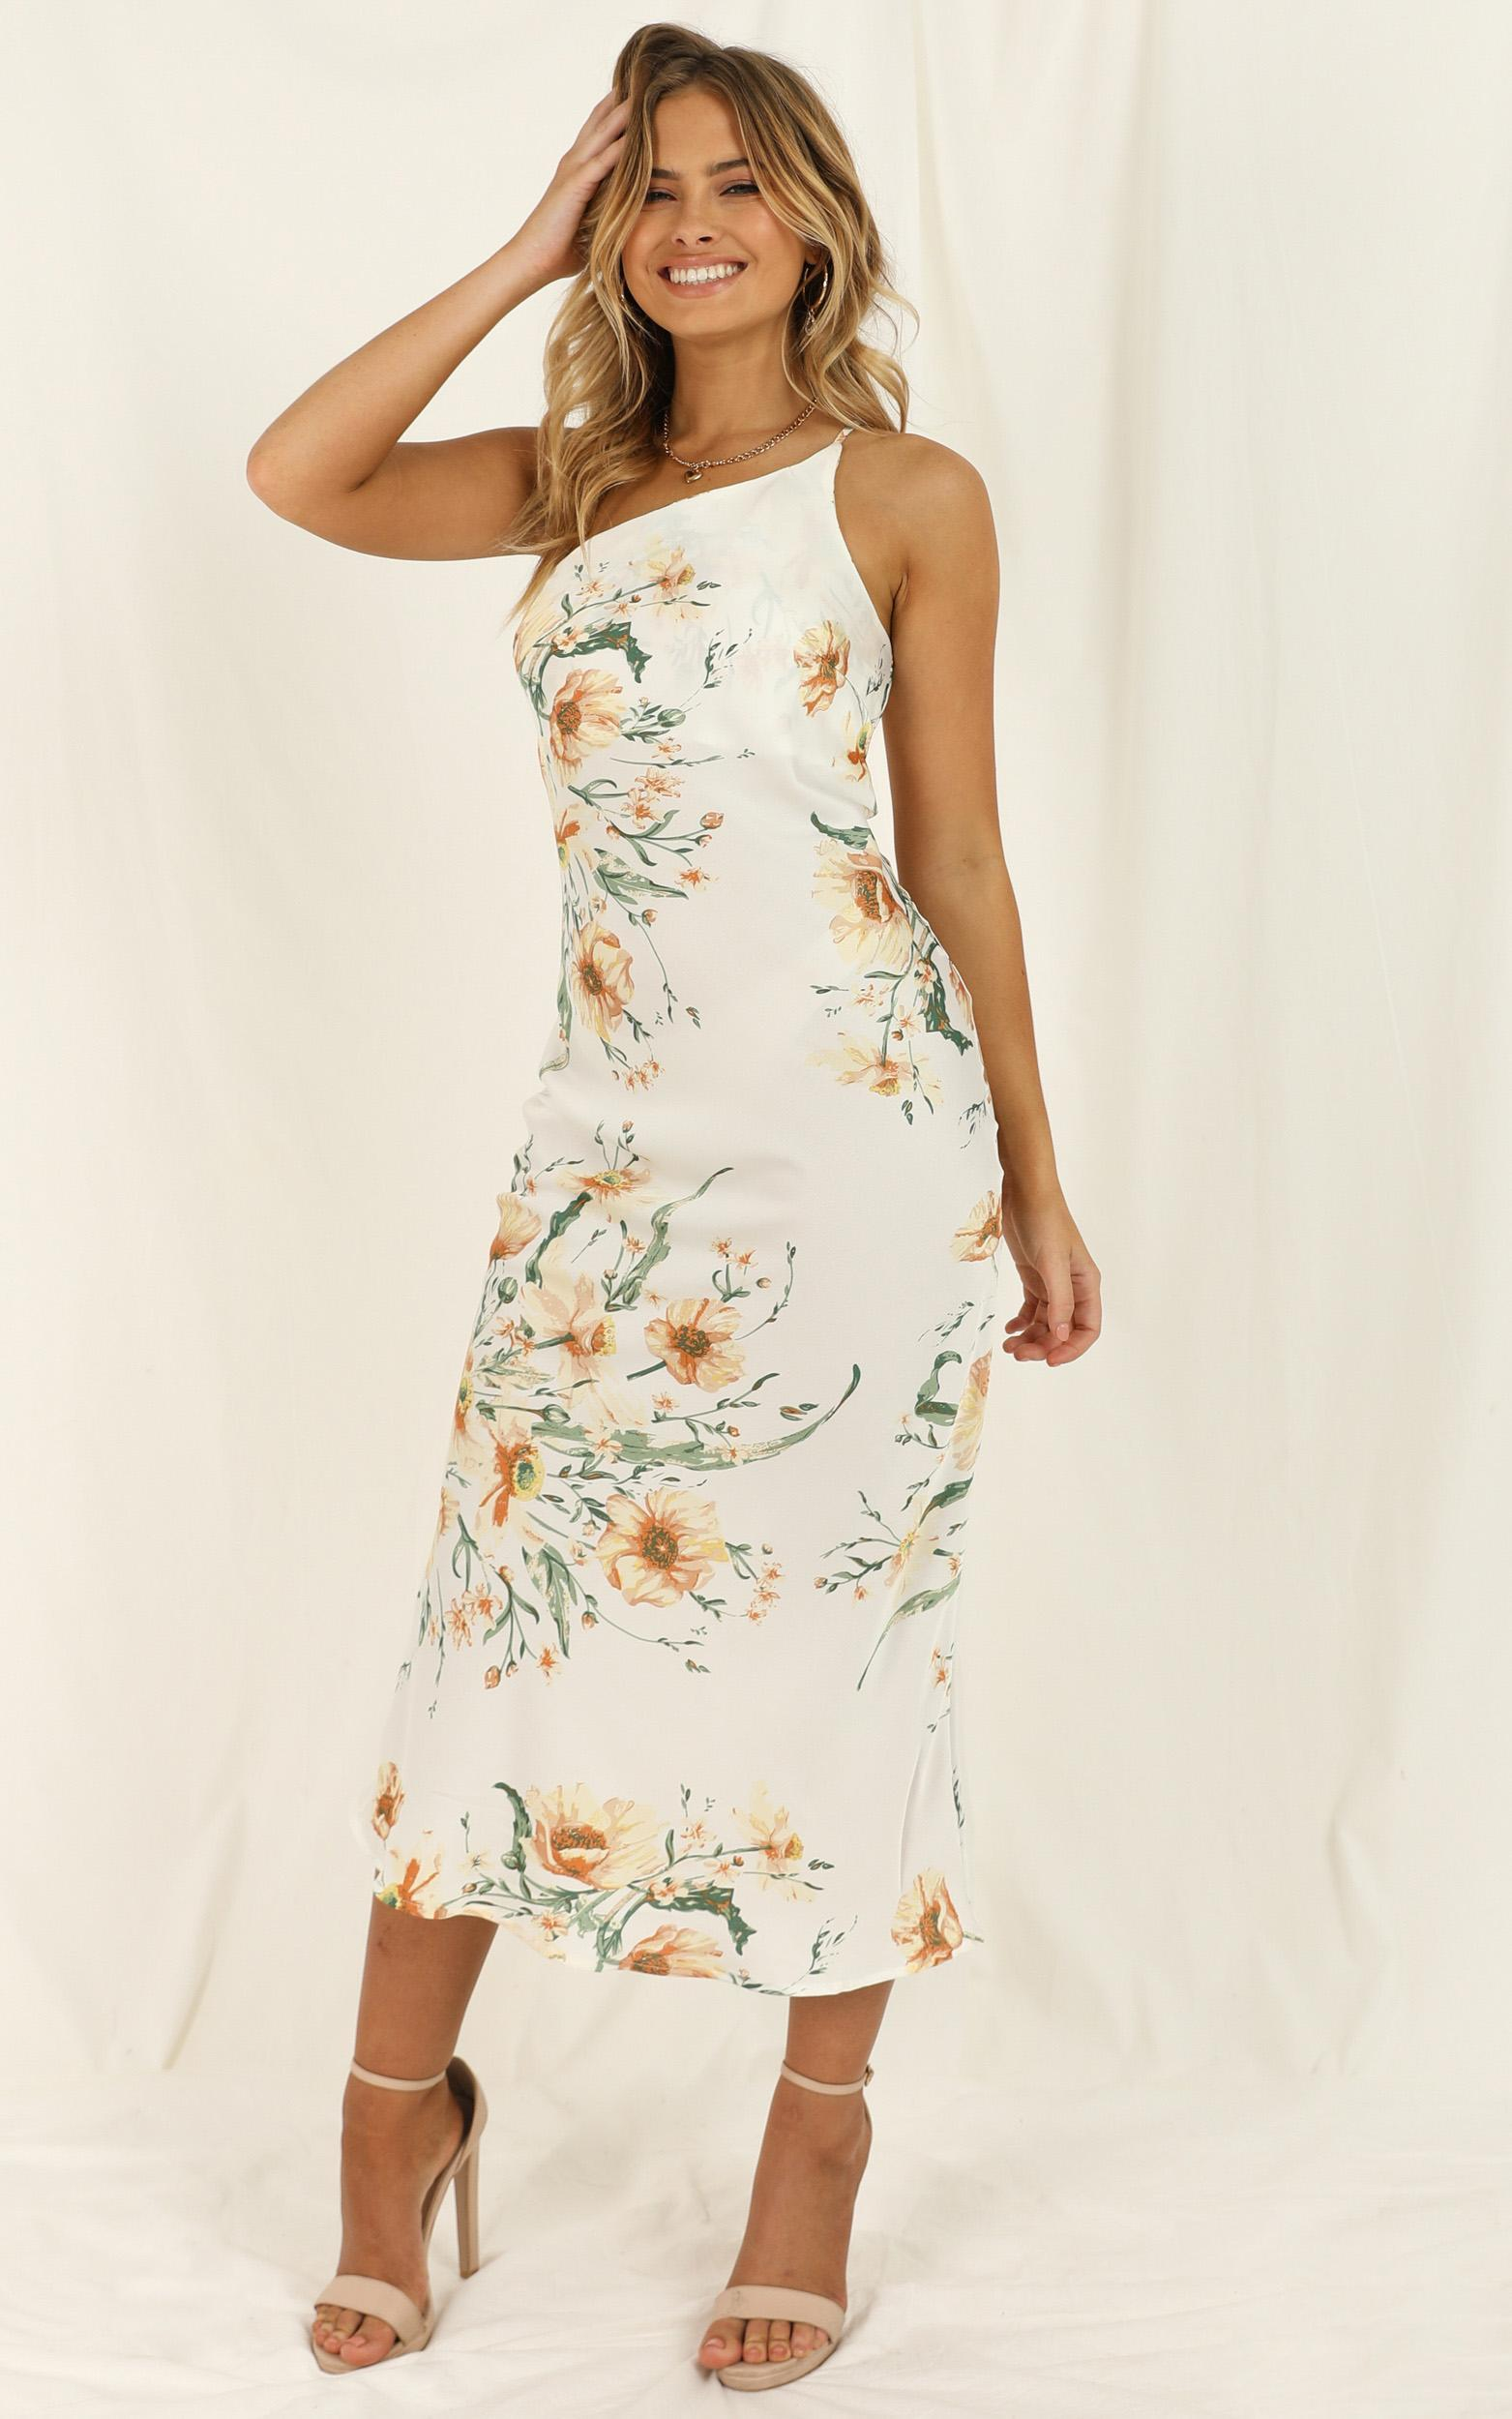 Daisy Seed dress in white floral - 12 (L), White, hi-res image number null